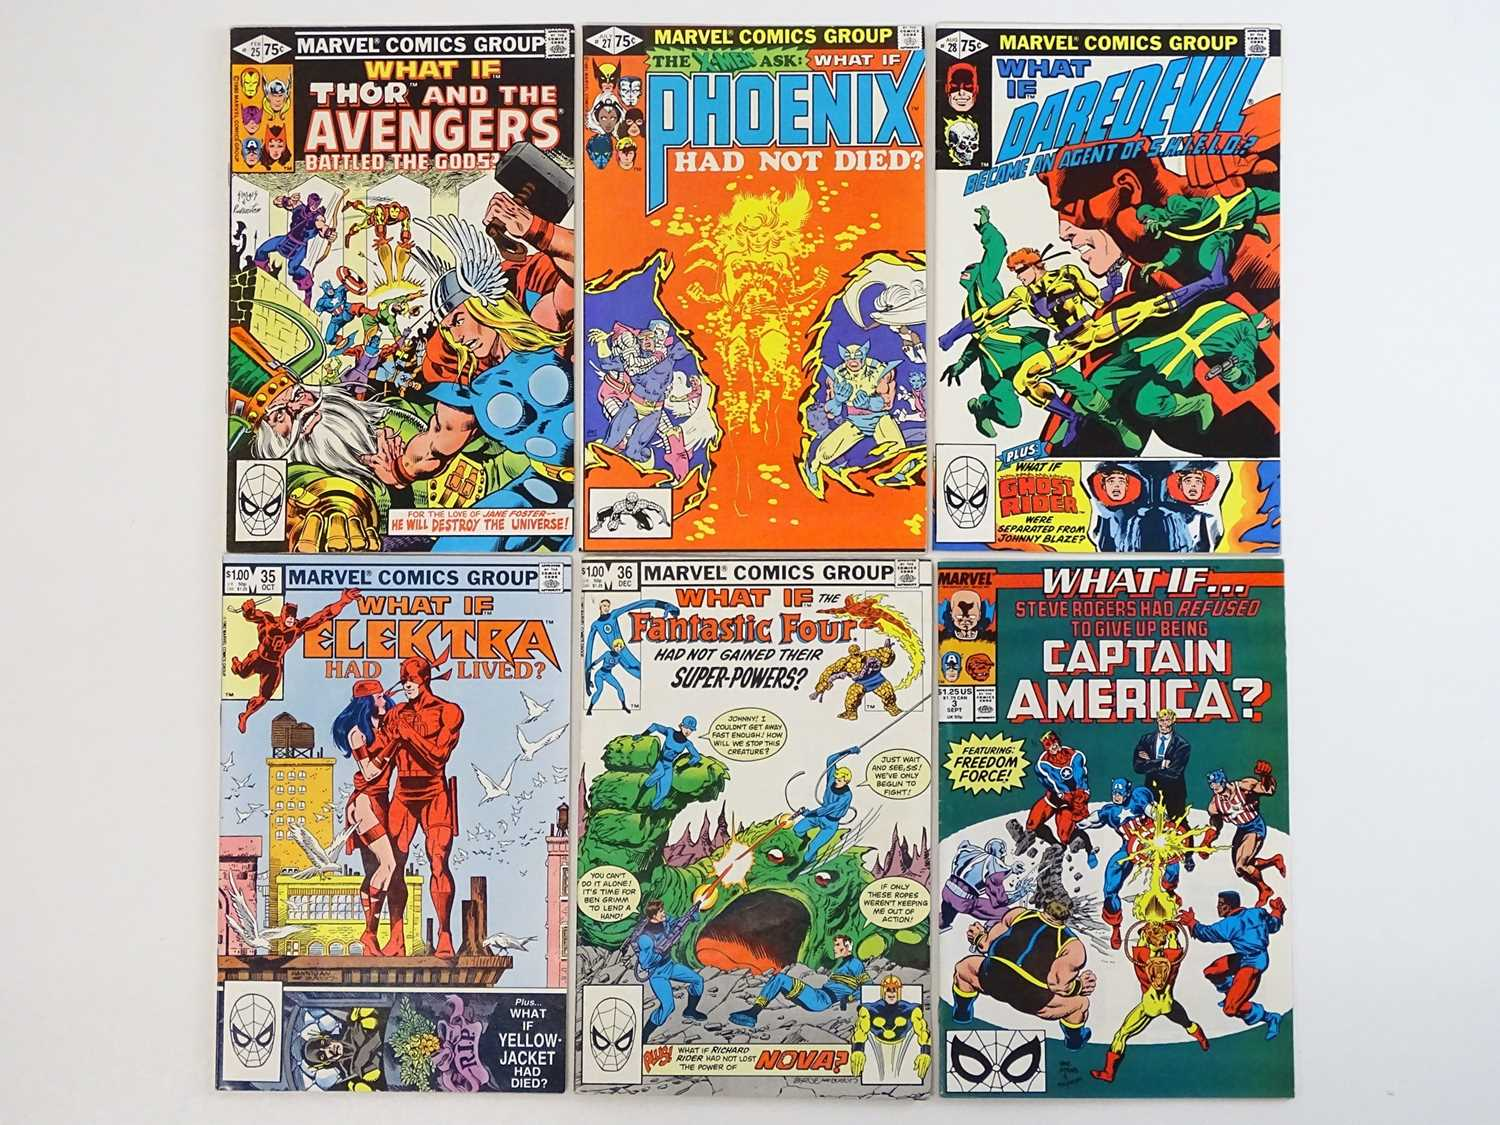 WHAT IF ? #3, 25, 27, 28, 35, 36 - (6 in Lot) - (1981/89 - MARVEL - US Price & UK Price Variant) -